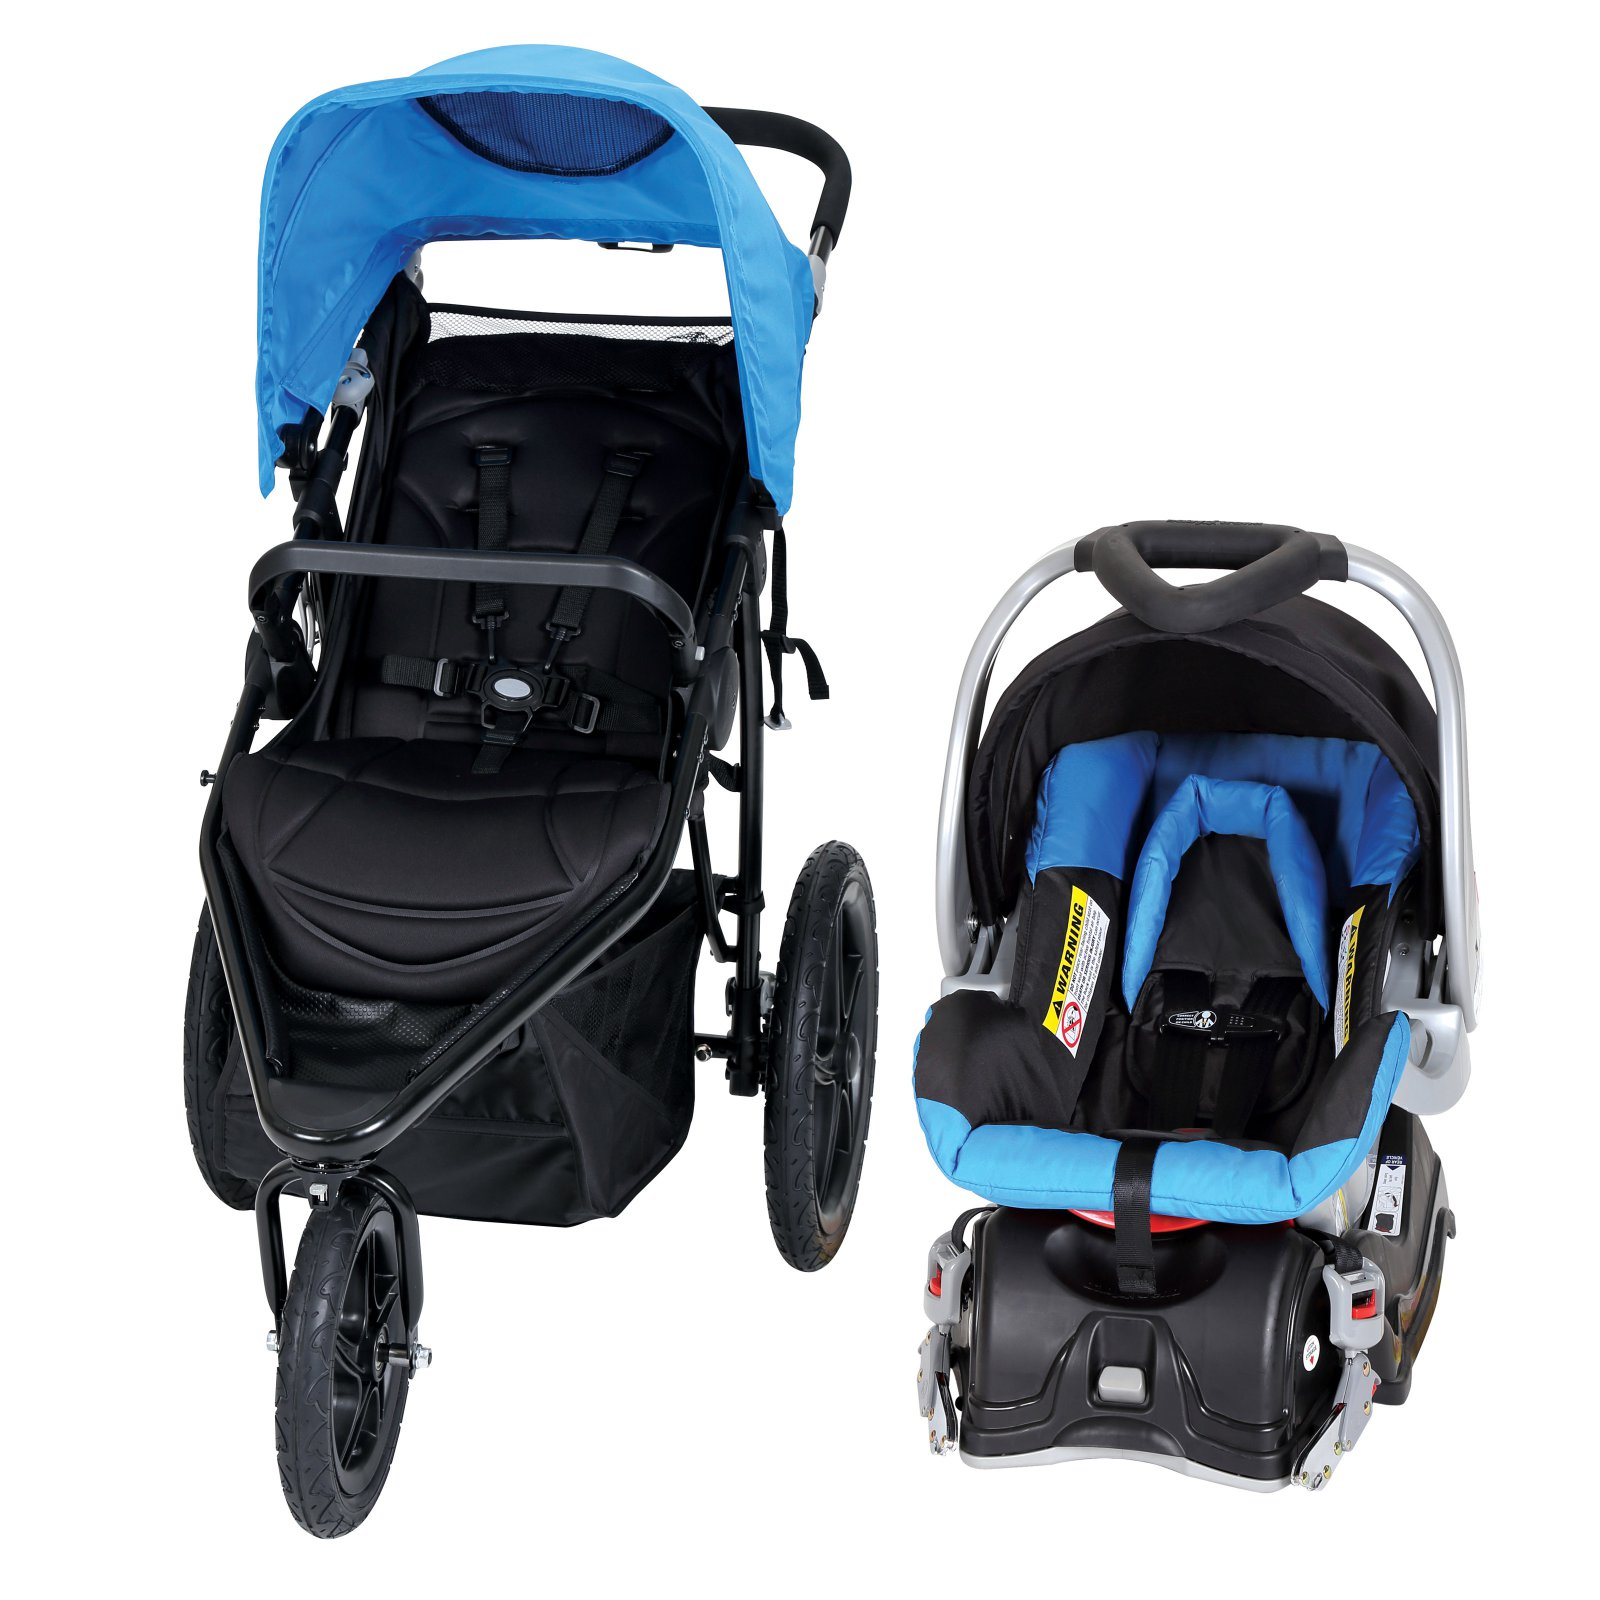 Baby Trend Stealth Jogger Travel System, Seaport by Baby Trend